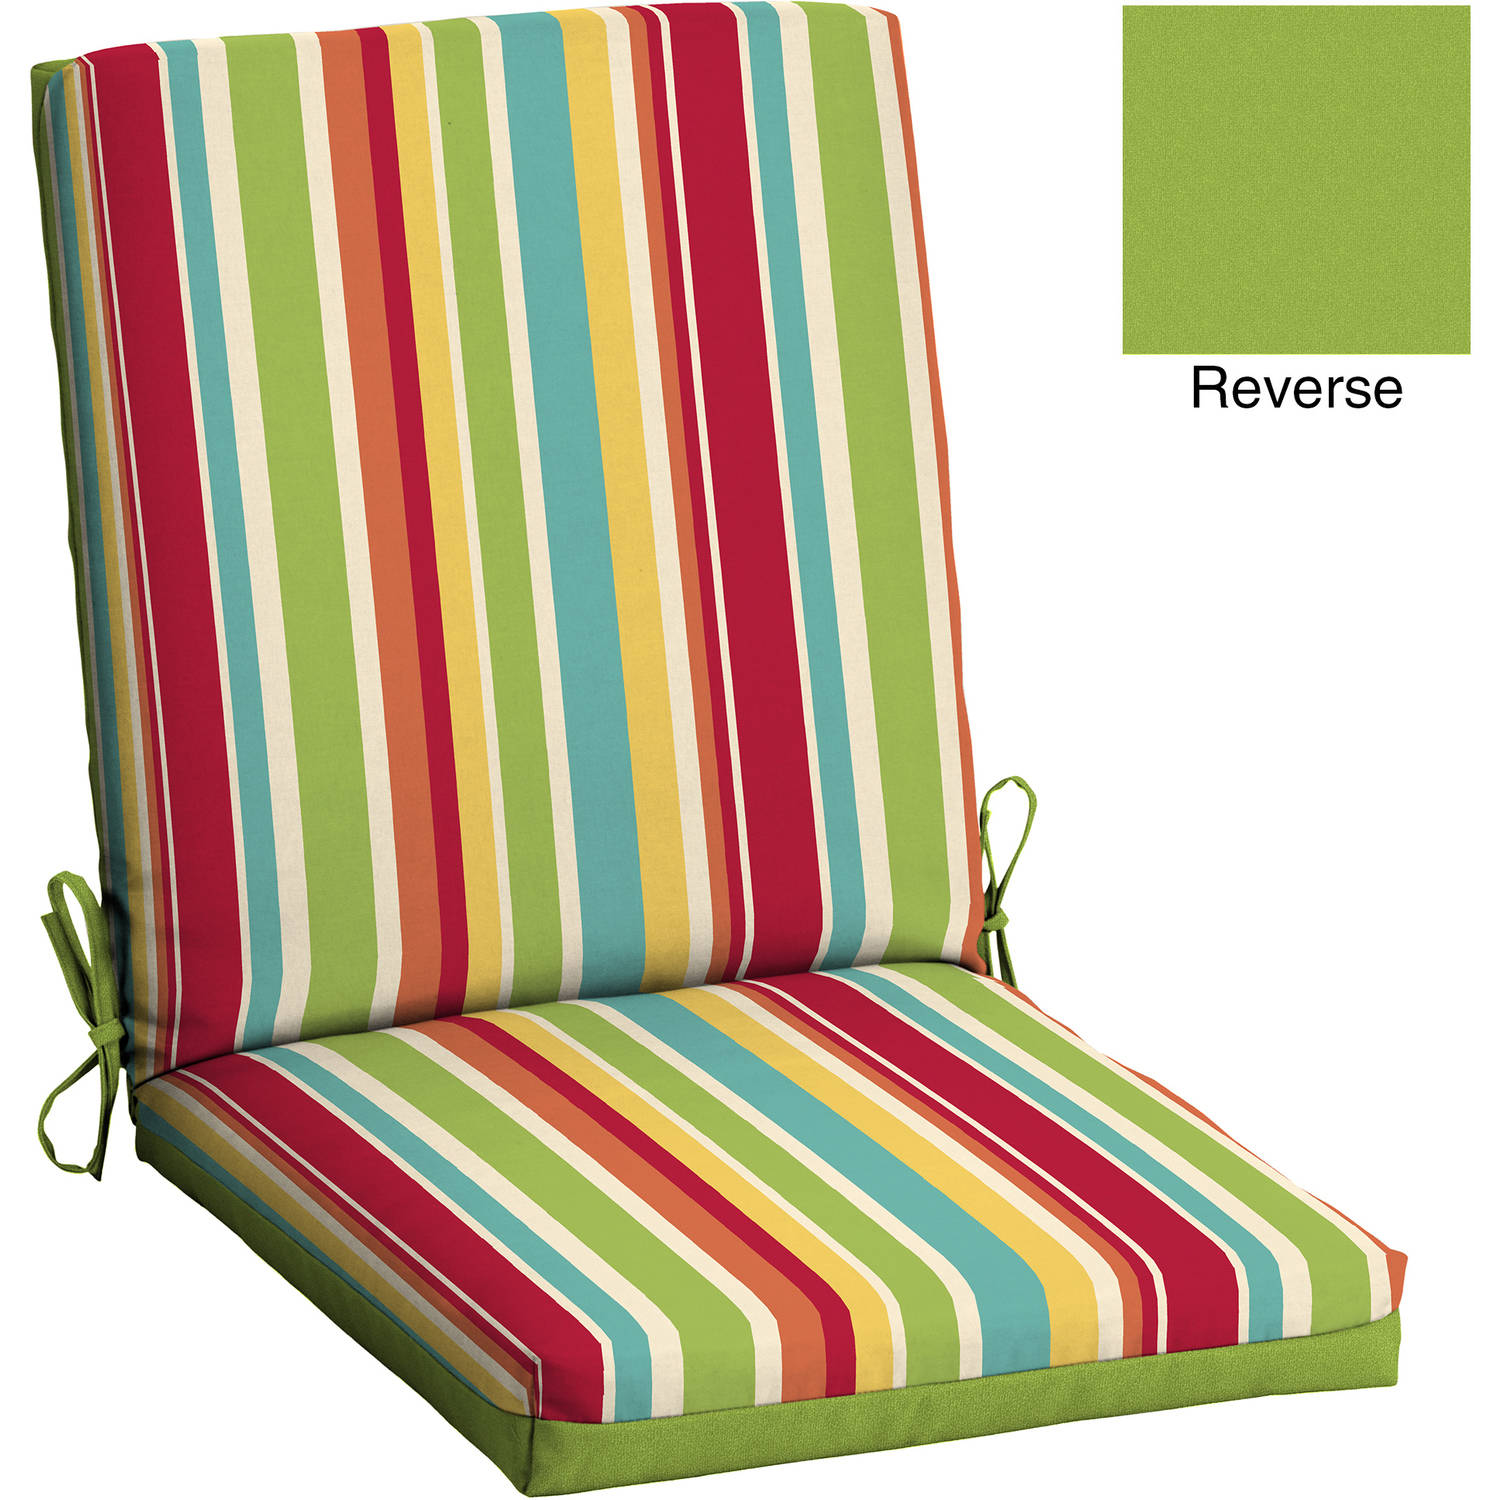 patio chair cushions mainstays outdoor patio reversible dining chair cushion, multi stripe PHUCLEL